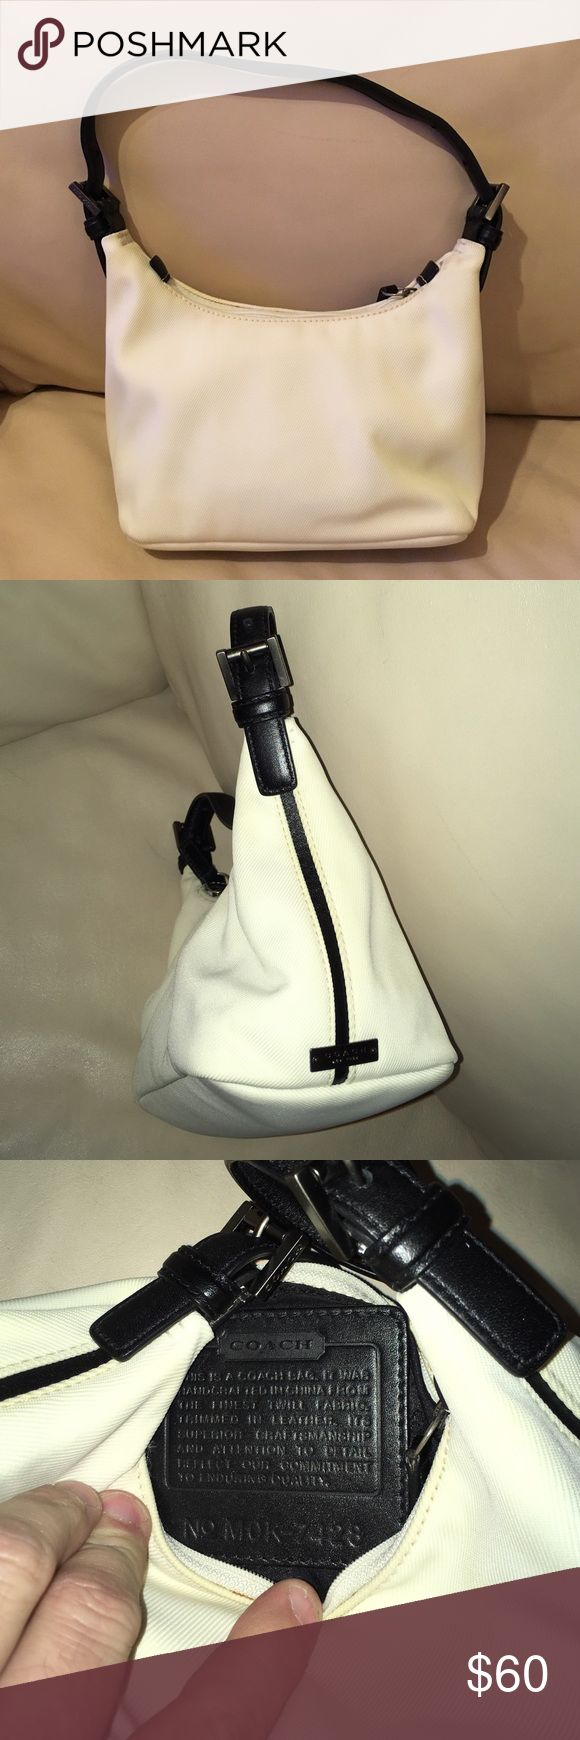 Coach purse New without tags Coach purse. Size approx 7 inches long, 10 inches high ( including straps). The color is a beige. Nice little purse for dinner parties. Clean never used. Smoke and pet free house Coach Bags Mini Bags